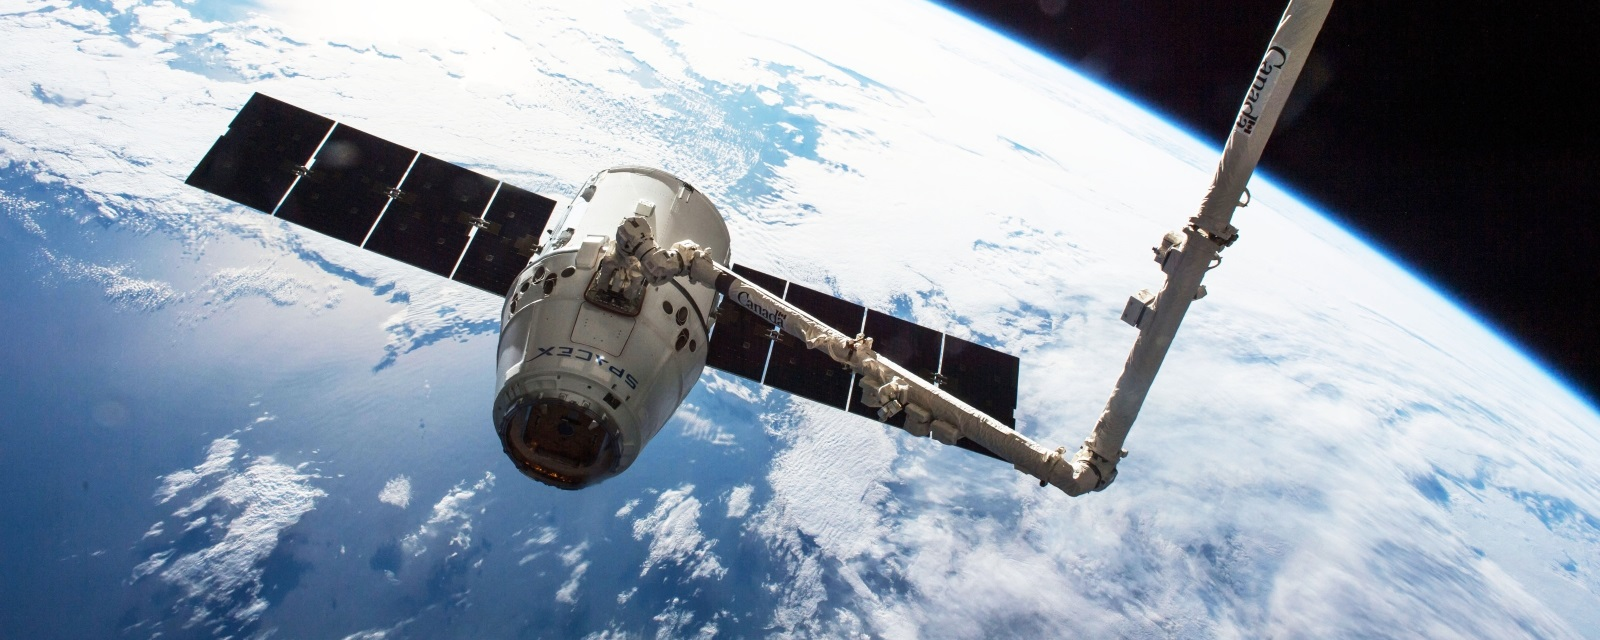 SpaceX Dragon capsule grappled by ISS Canadarm (2016-04-10)